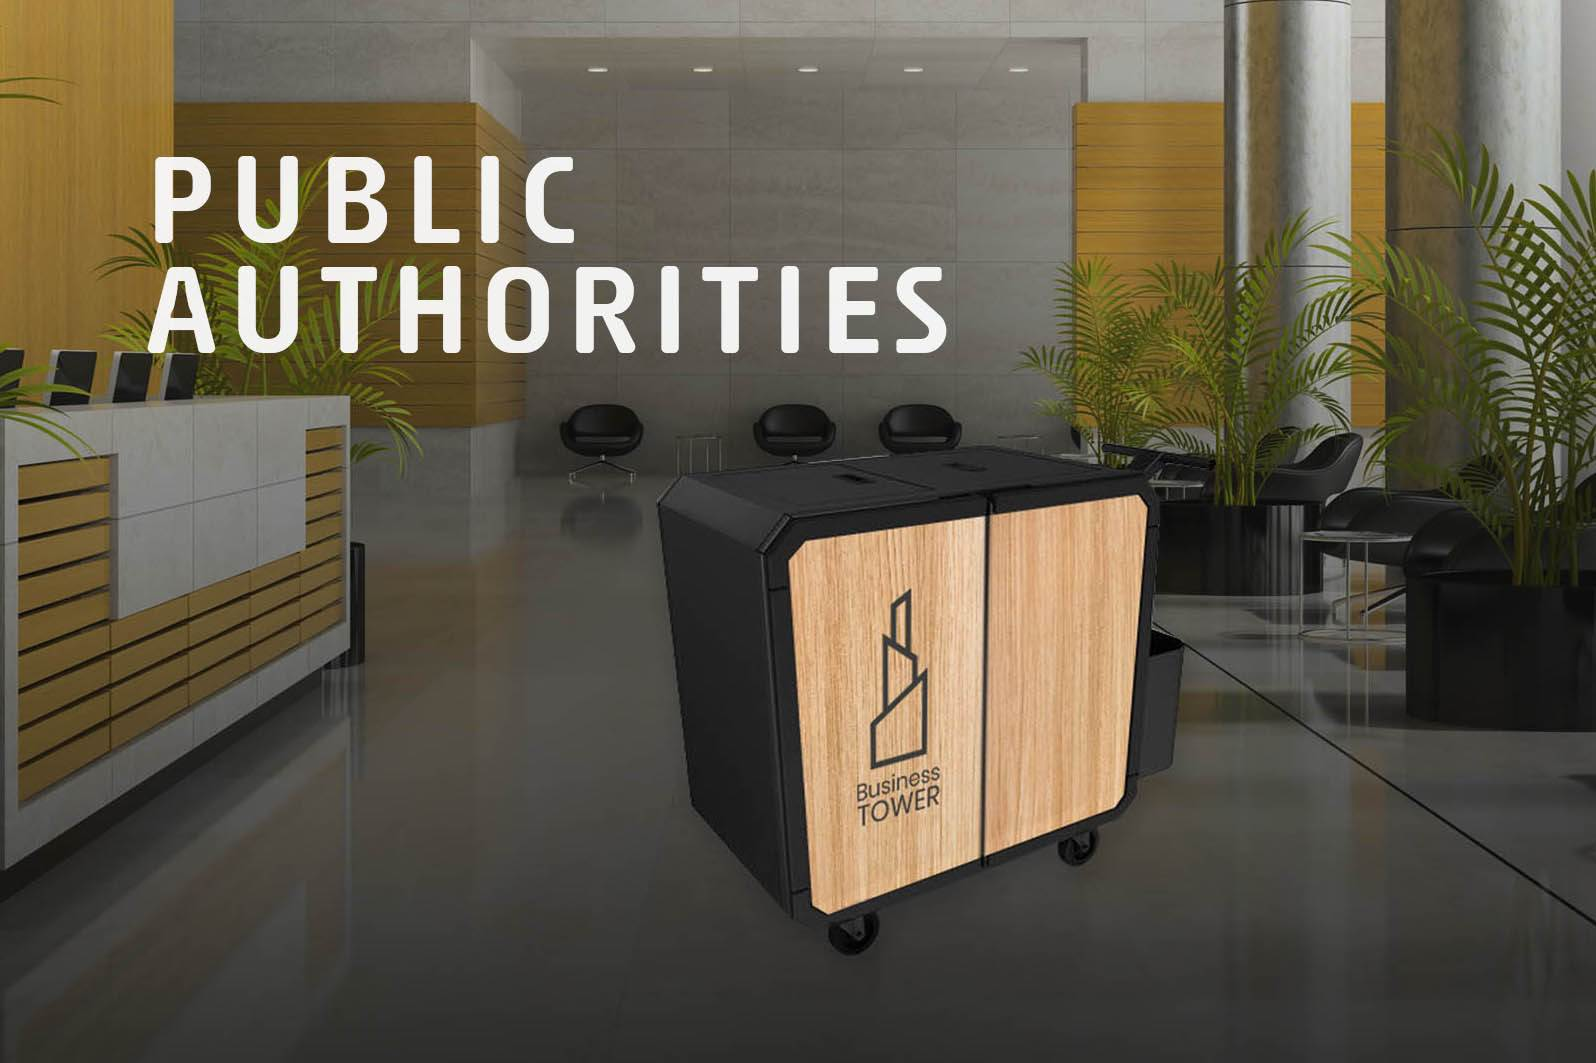 Netsmart professionnal cleaning trolley for public authorities